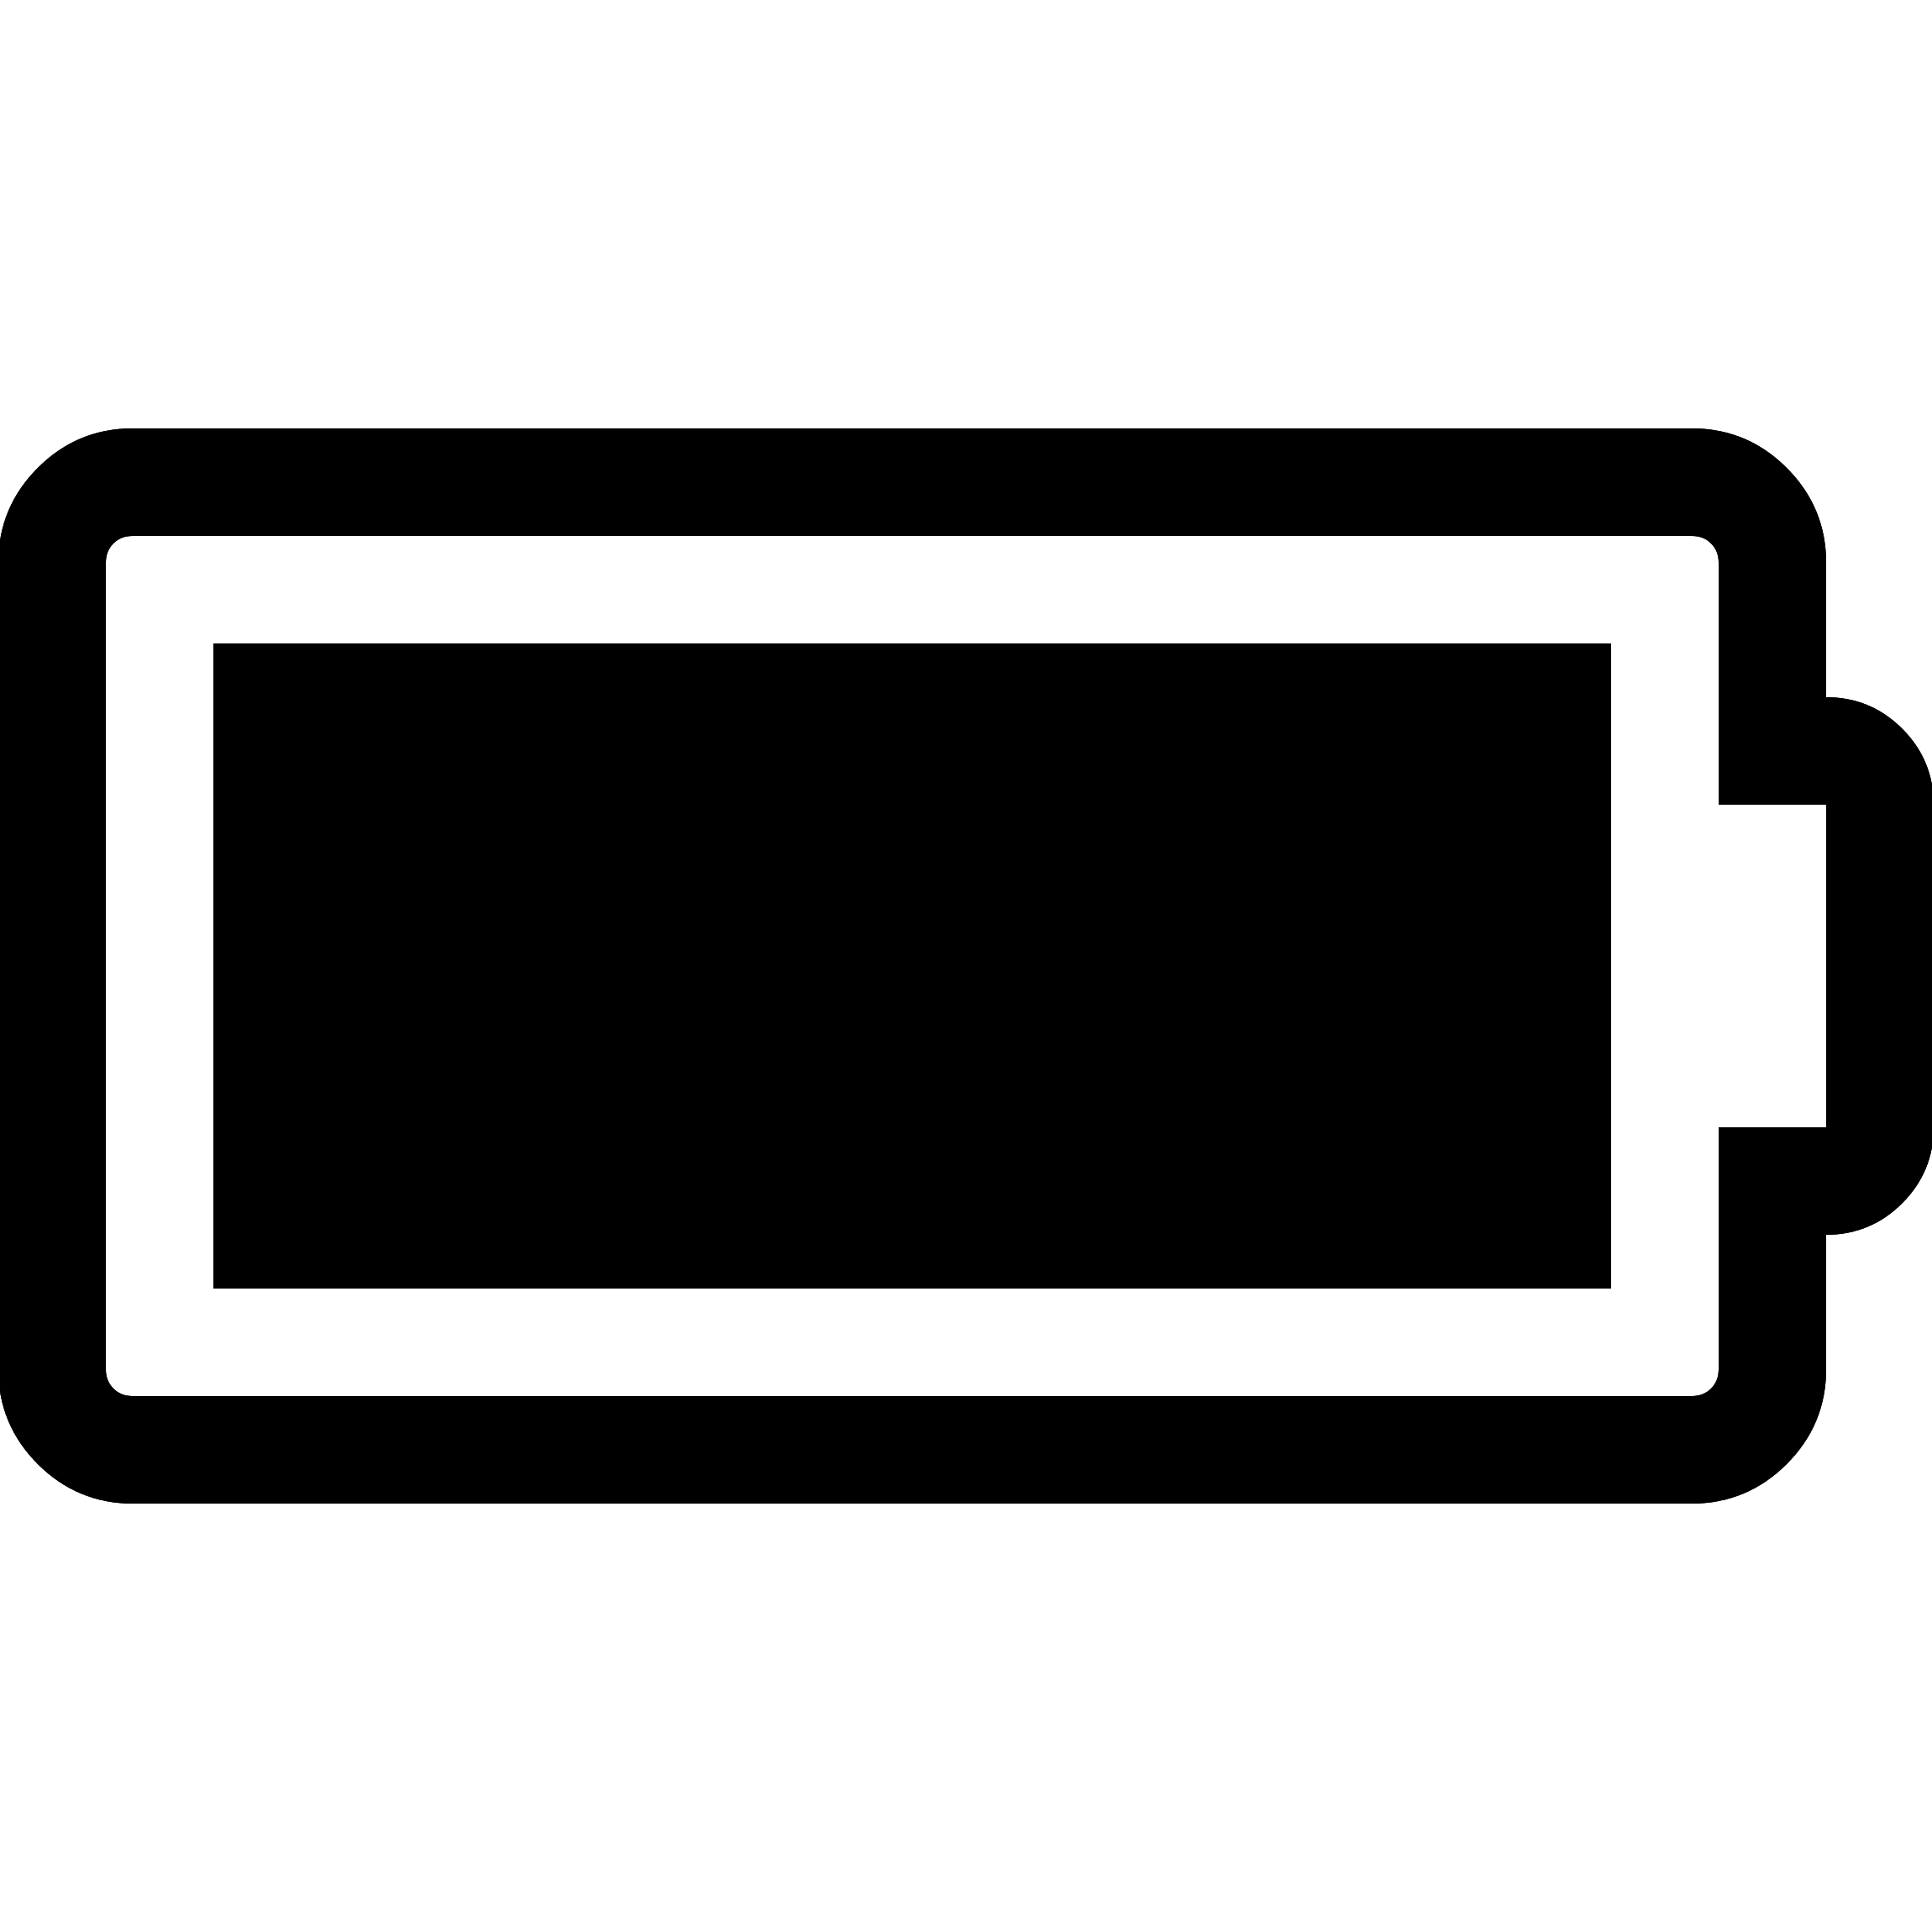 data/images/battery-full.png